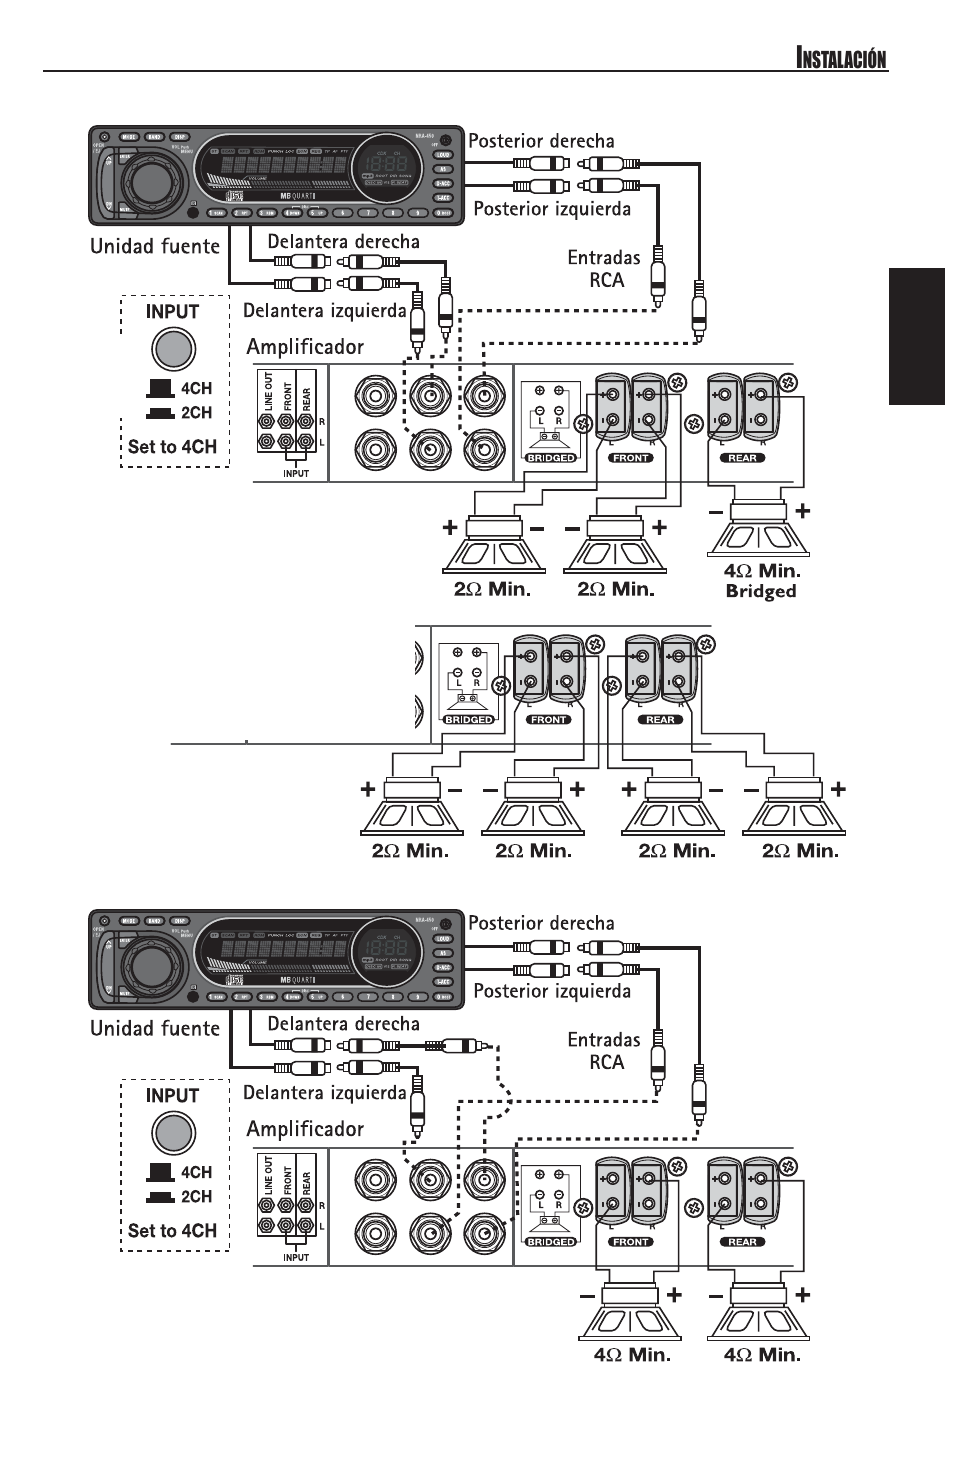 4 Channel Amp Wiring Diagram 1 Sub - Wiring Diagrams on 4 channel amp 4 speakers 1 sub, guitar string diagram, 4 channel amplifier installation kit, bridging 4 channel amp diagram, 2 channel amp diagram, 4 channel marine amps, 4 channel momentary remote wiring diagram, 1999 ford f-250 fuse box diagram, 4 channel audio amplifier, 4 channel keyboard amps, 4 channel car amp, bridged amp diagram, sound system diagram,